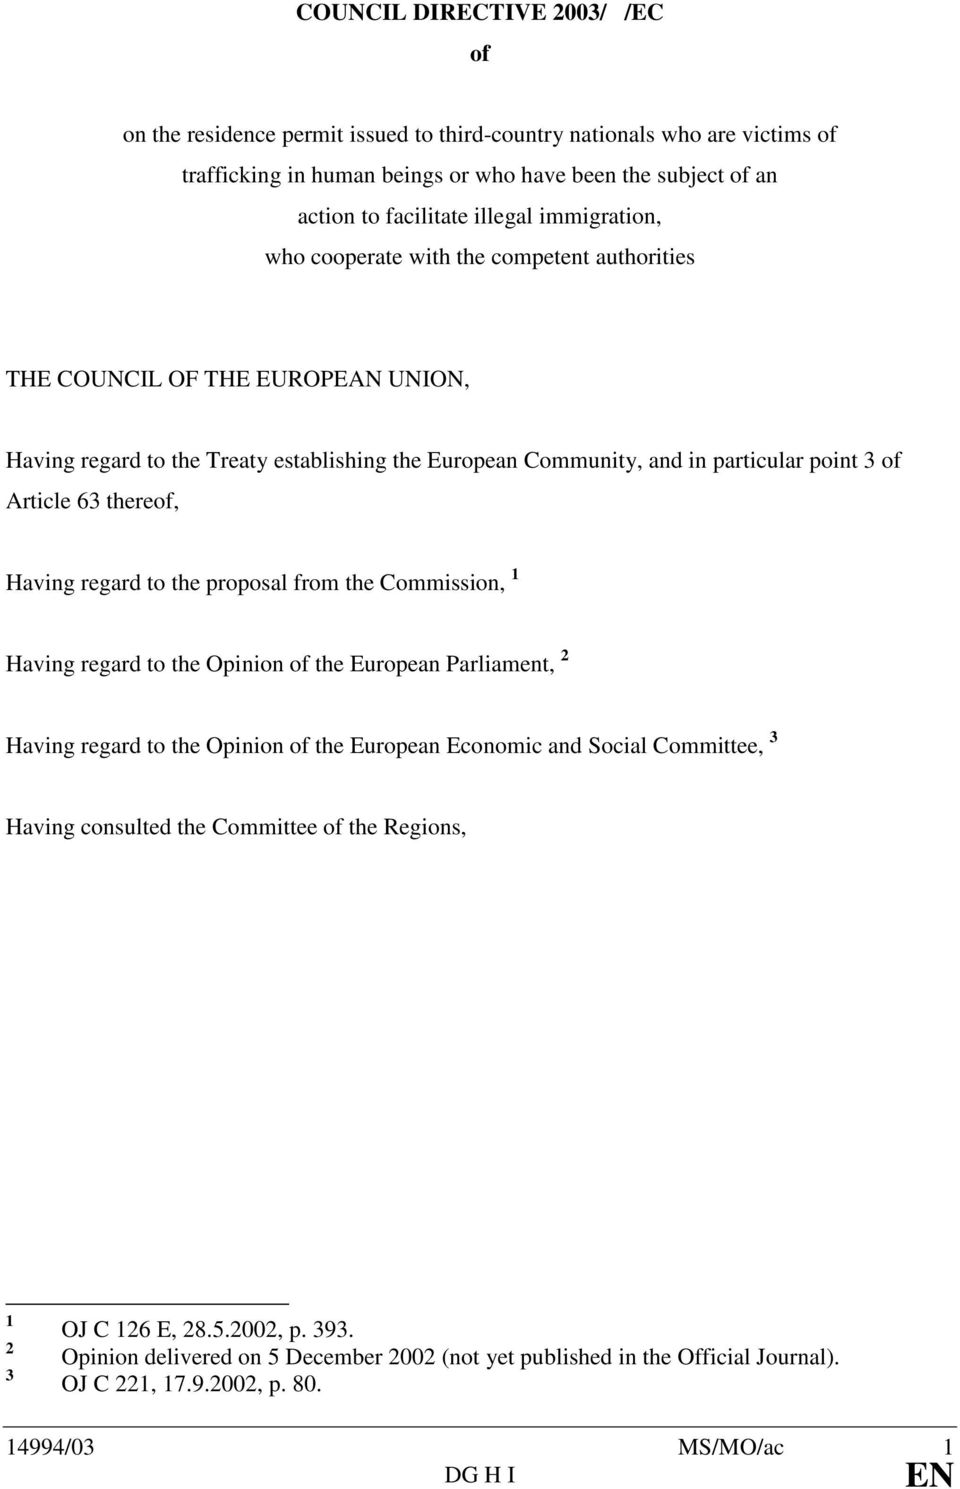 thereof, Having regard to the proposal from the Commission, 1 Having regard to the Opinion of the European Parliament, 2 Having regard to the Opinion of the European Economic and Social Committee, 3